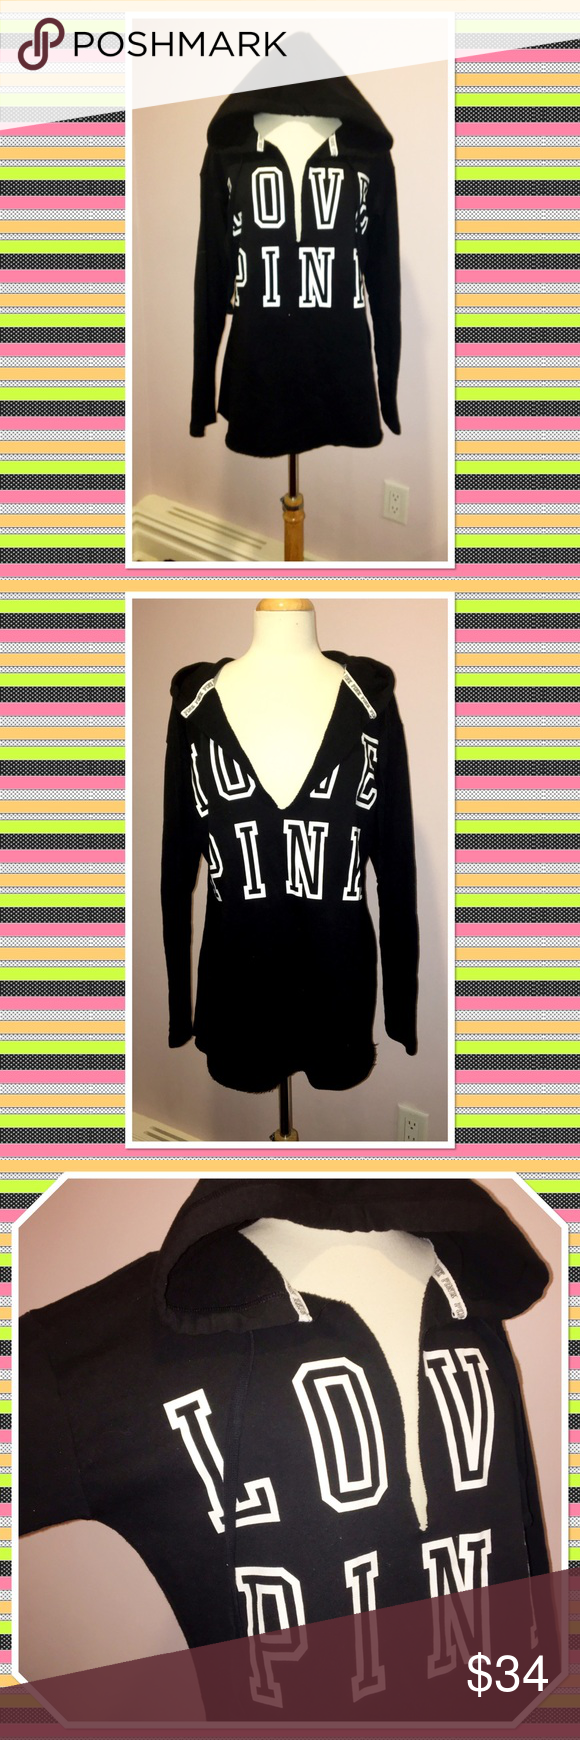 Victoria's Secret PINK Logo Hoodie Sweatshirt Victoria's Secret PINK Hooded Logo Sweatshirt. Longer tunic style. Drawstring hood. Back is plain. Worn once. Perfect condition. 60% cotton, 40% polyester. Victoria's Secret Tops Sweatshirts & Hoodies